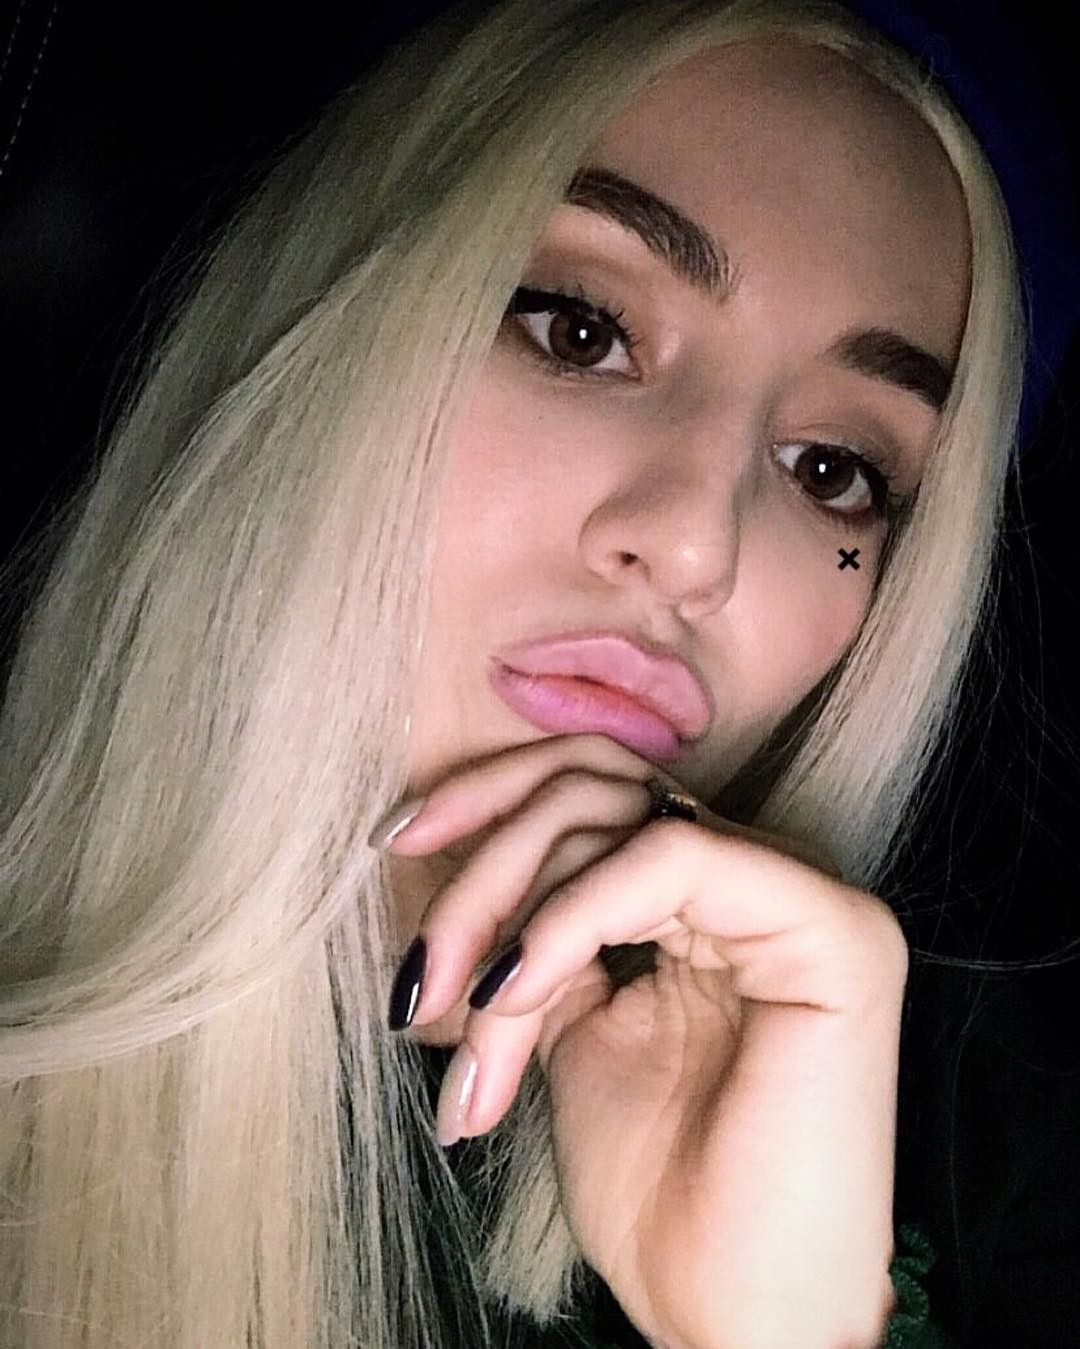 Pin By Ava Max On Ava Max In 2020 Psycho Girl Amanda Singer